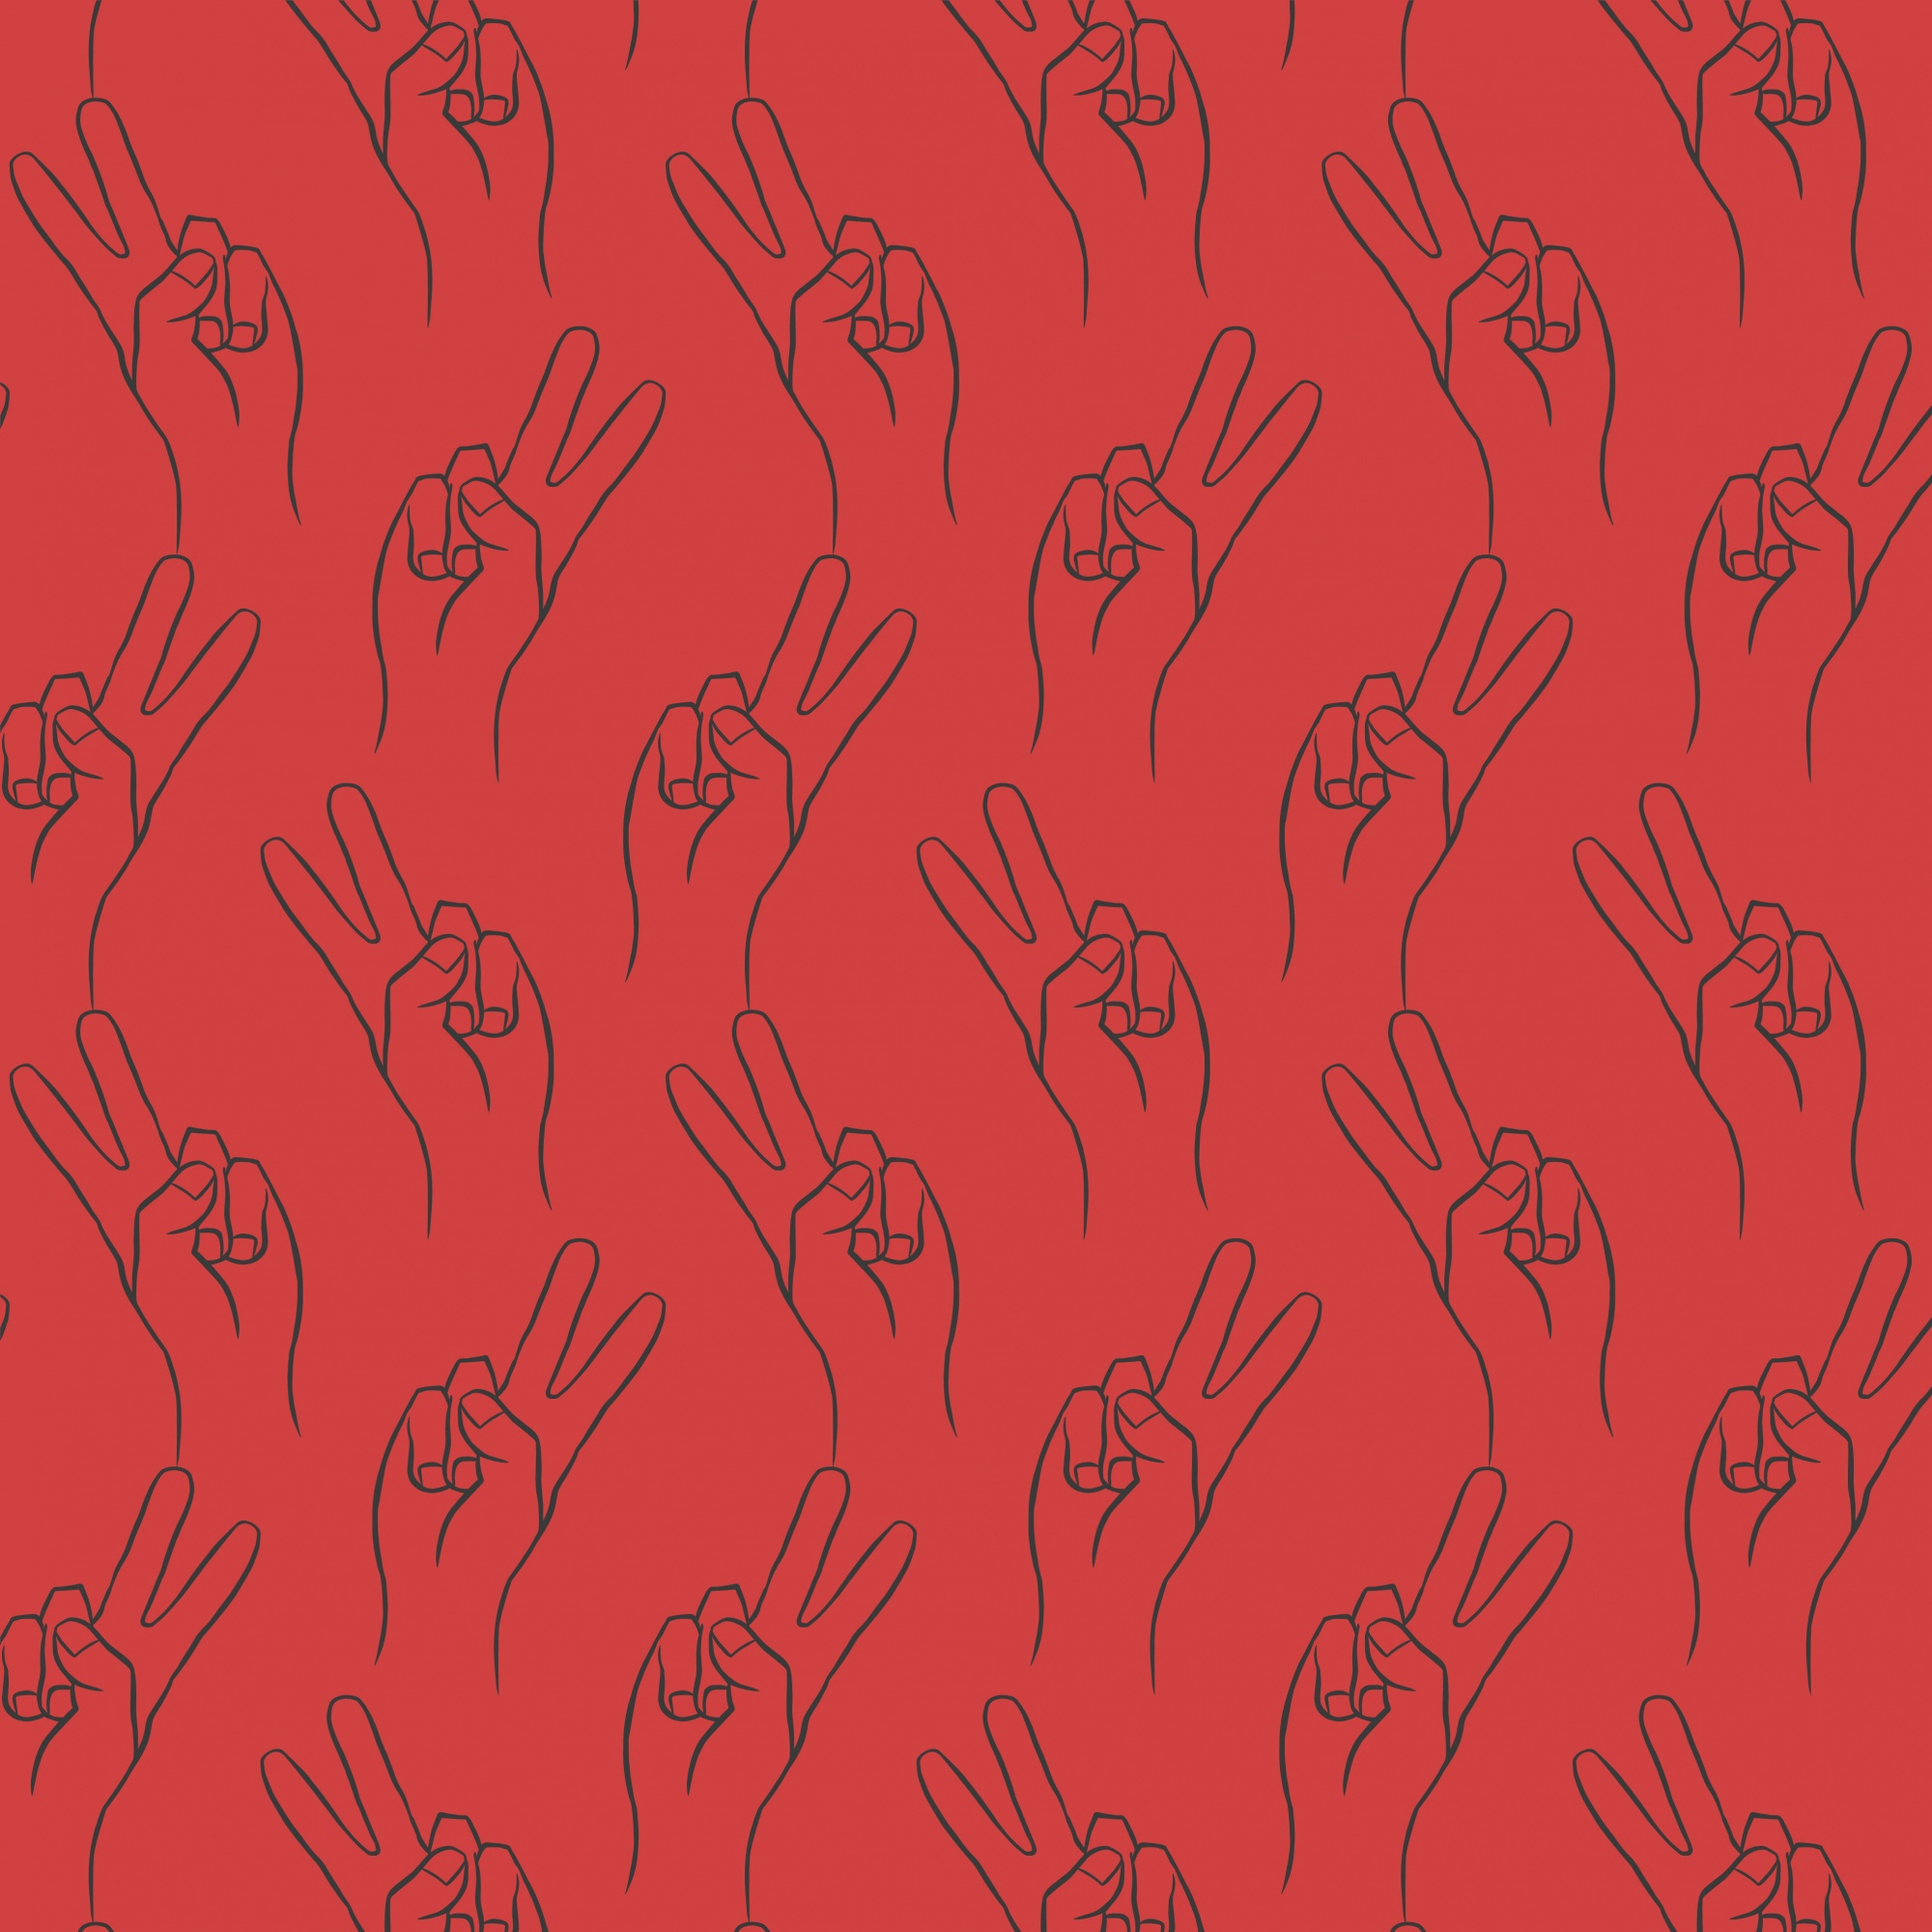 Victory-sign-hand-drawing-vector